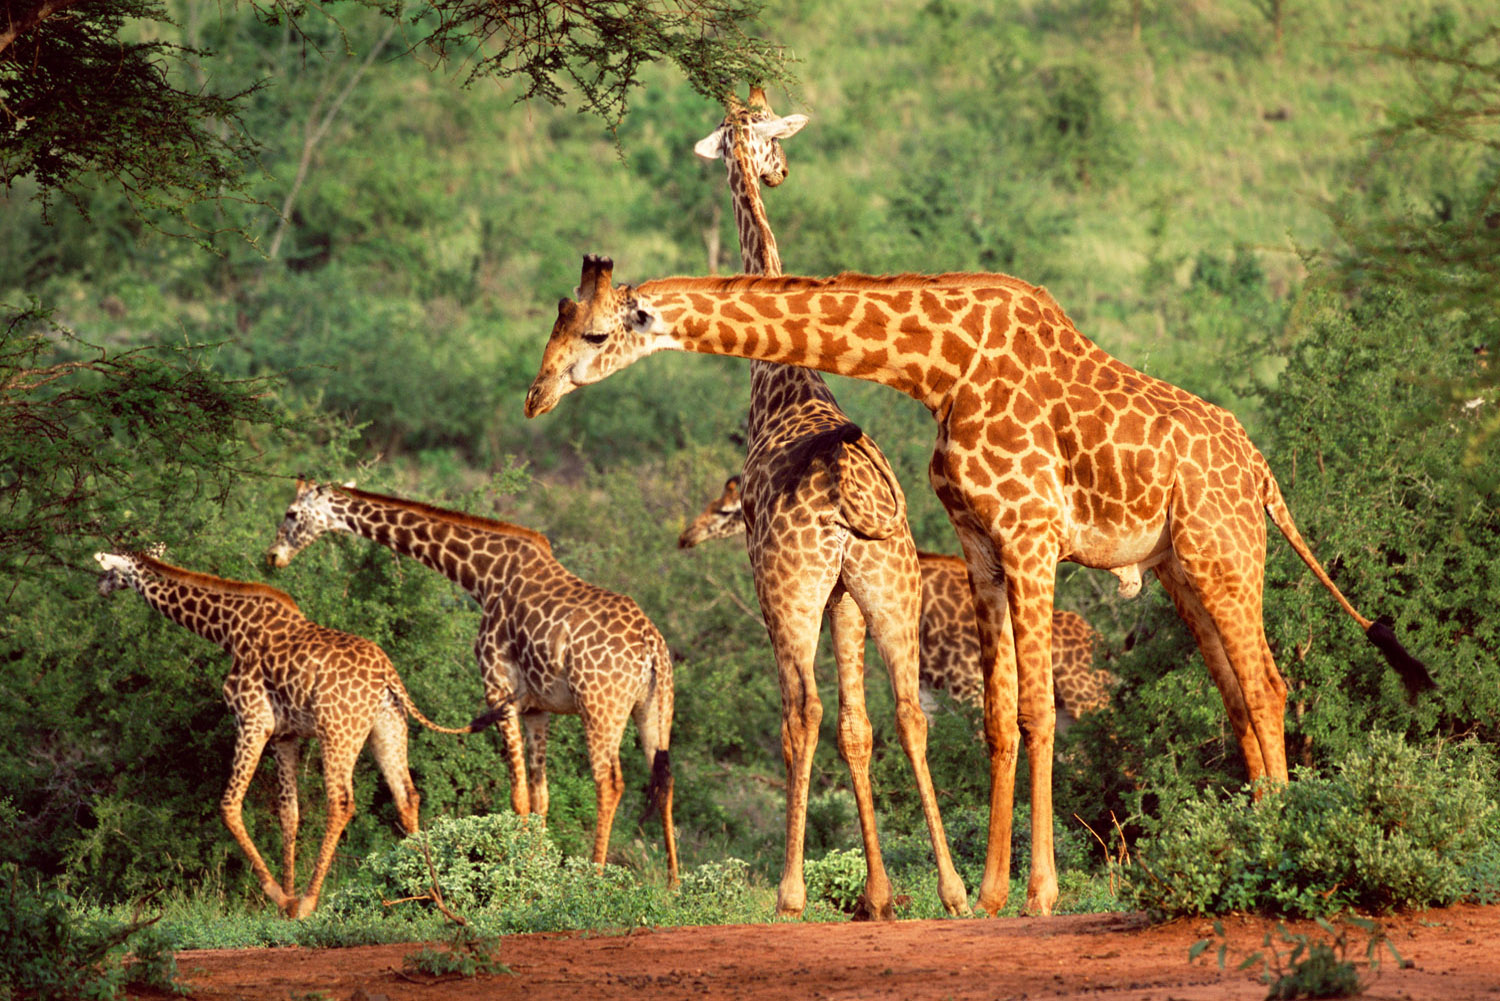 Maasai giraffes, Tsavo West National Park, Kenya